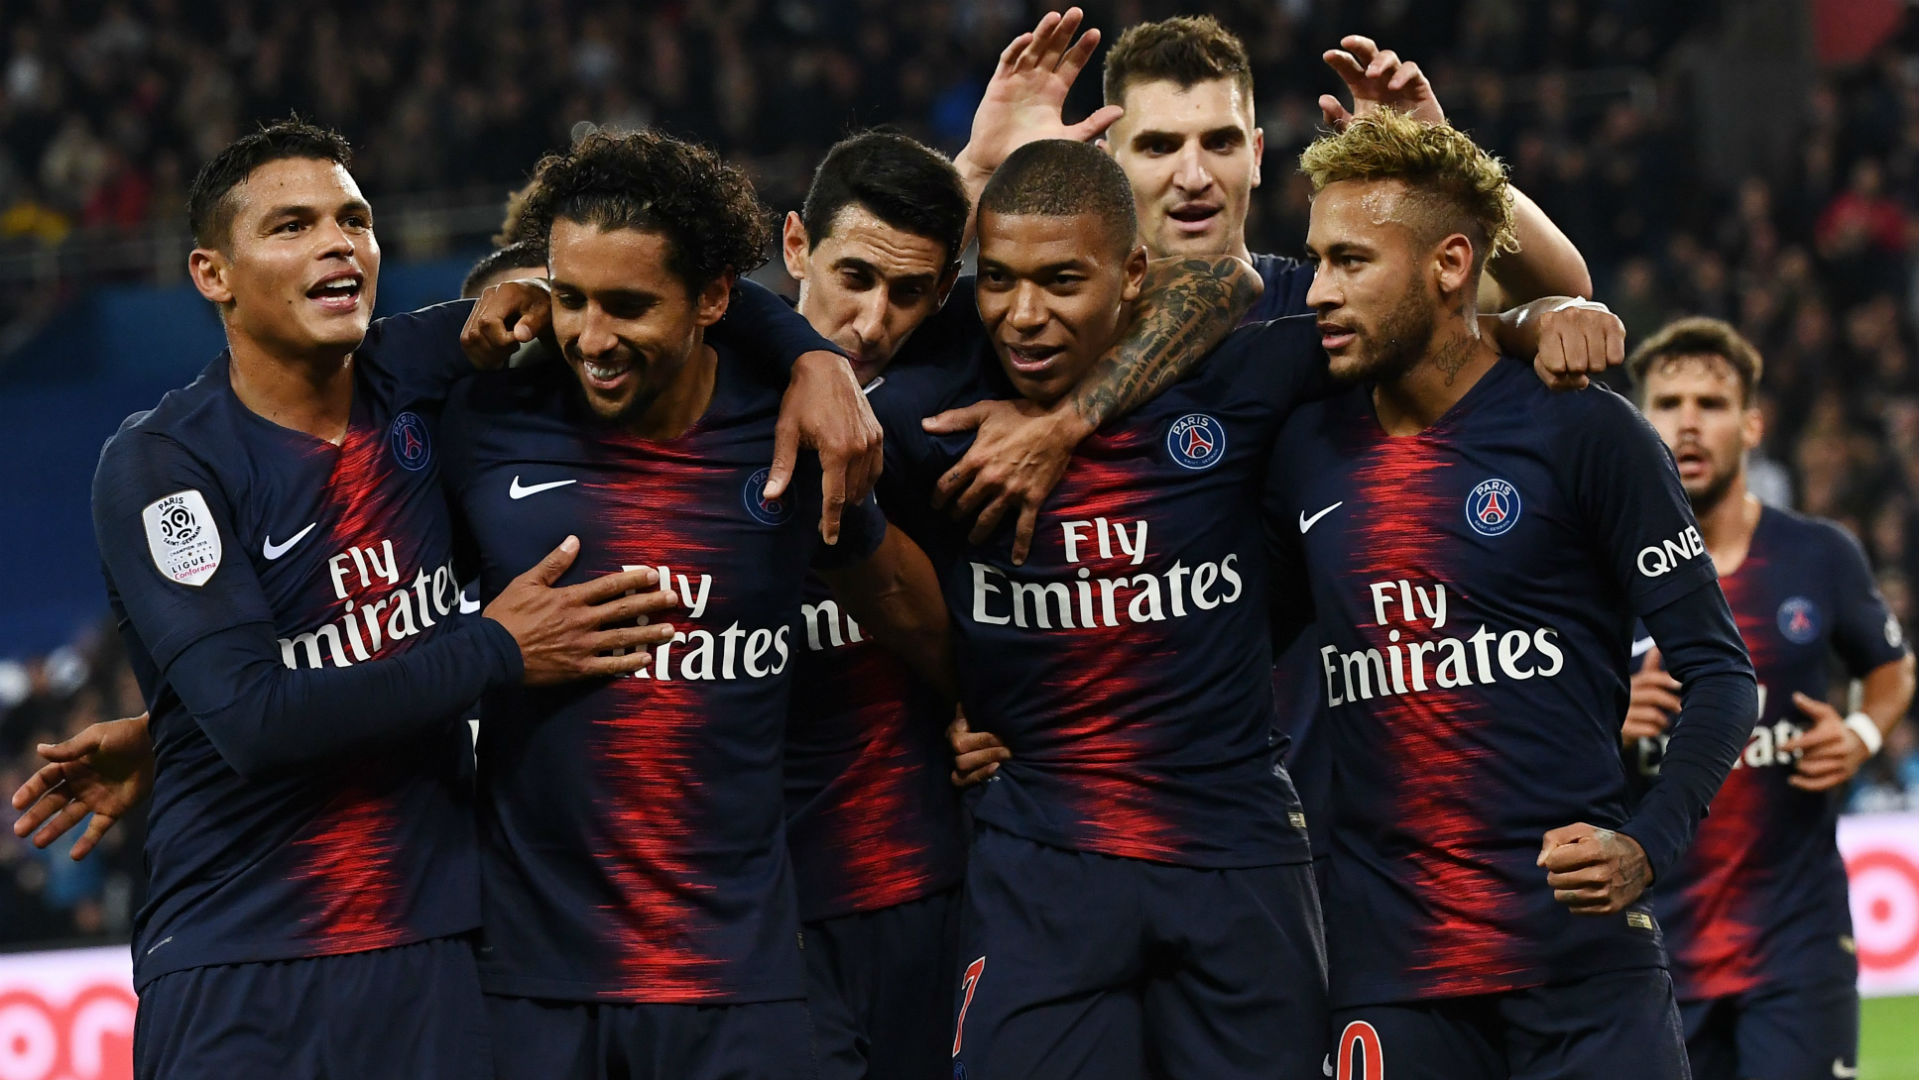 Mbappe Helps Psg Break 82-Year-Old Record